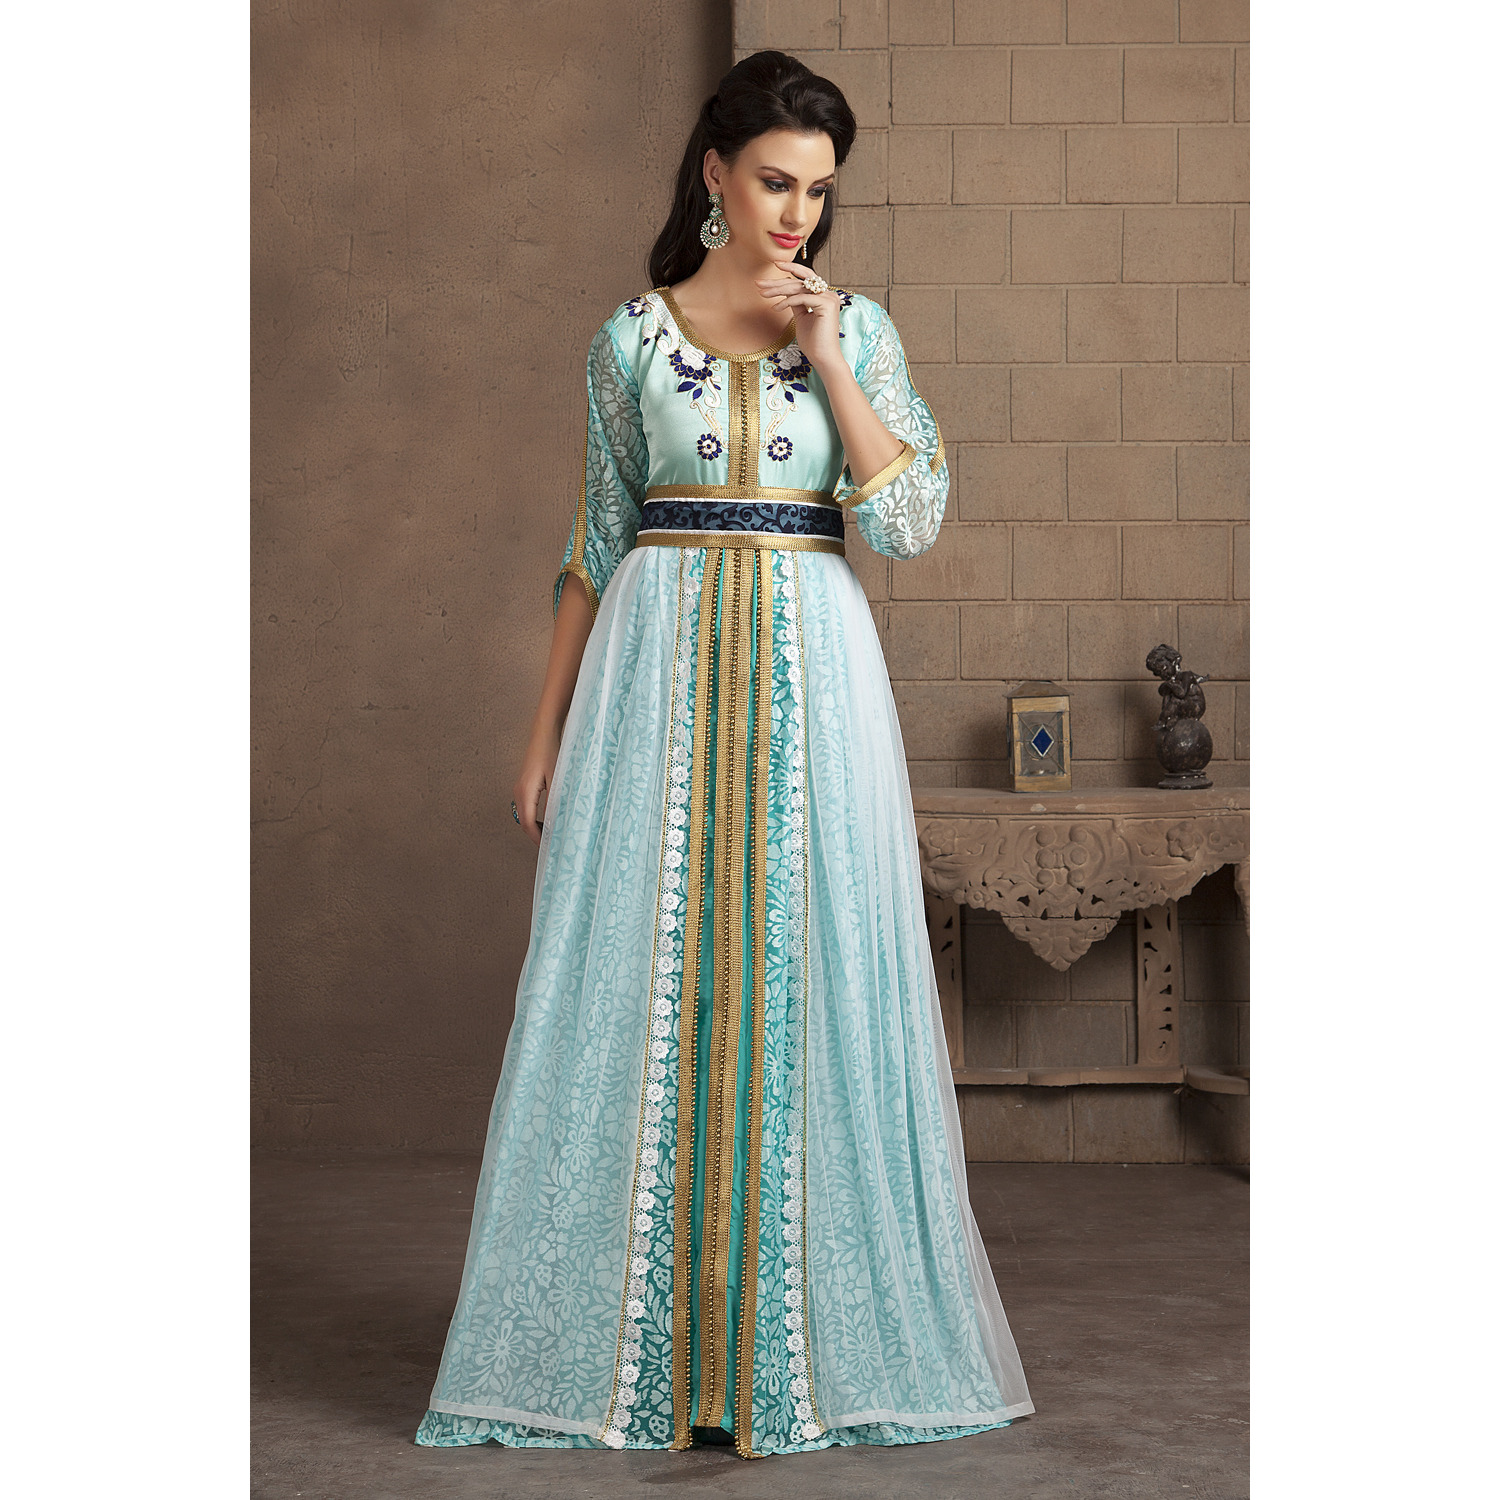 Aqua Blue Color Kaftan Arabic Evening Dress With Net Brasso and Thread Work (Size:XS)